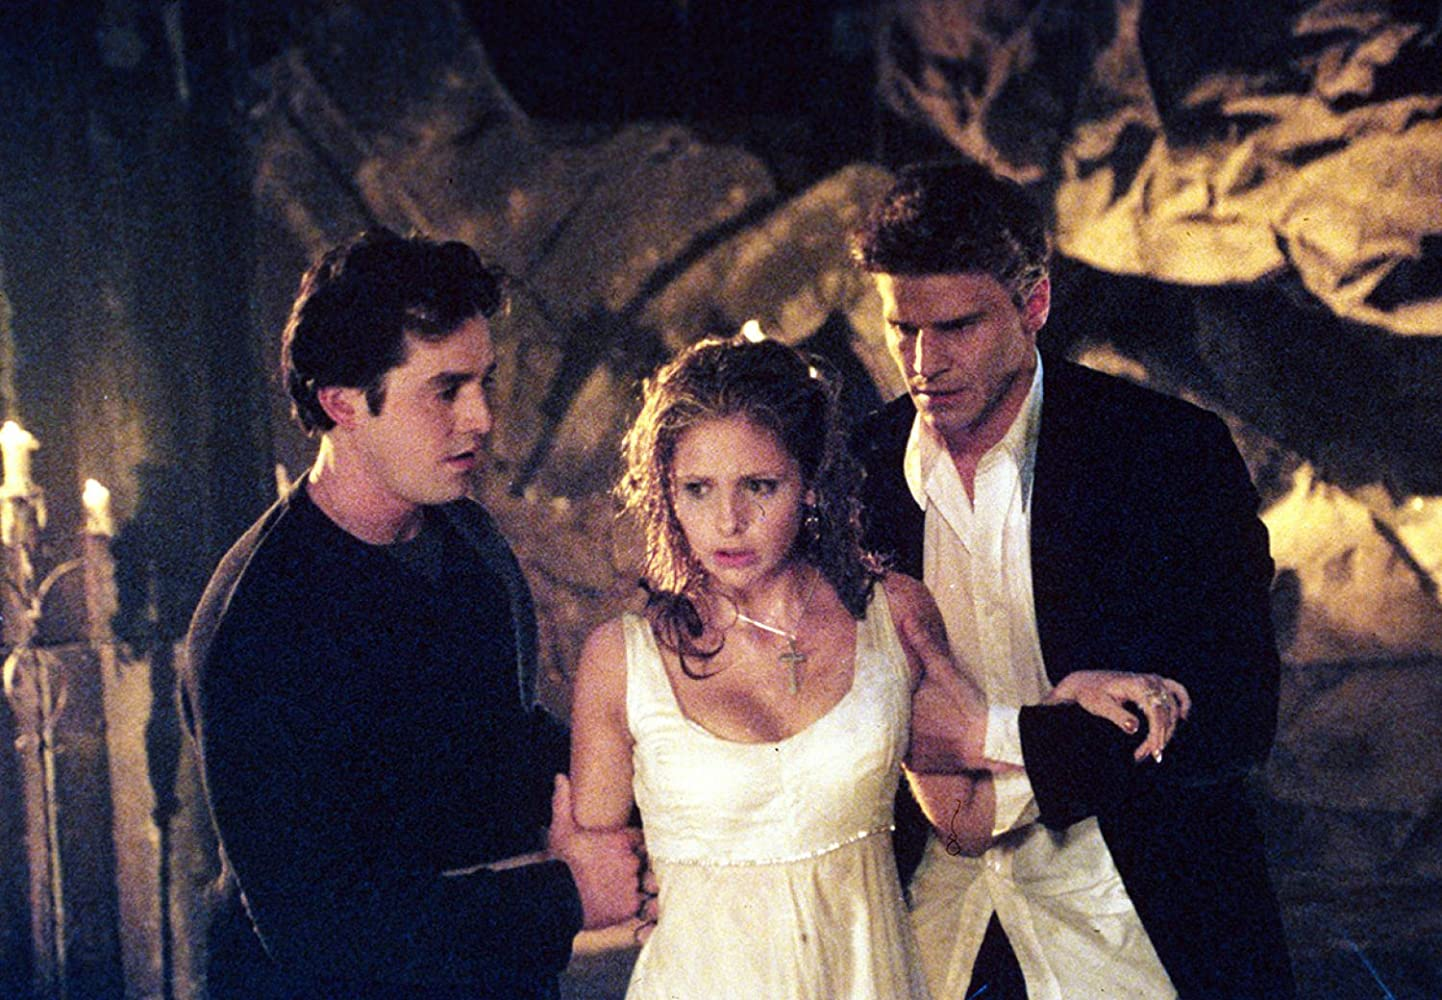 Sarah Michelle Gellar, David Boreanaz, and Nicholas Brendon in Buffy the Vampire Slayer (1996)